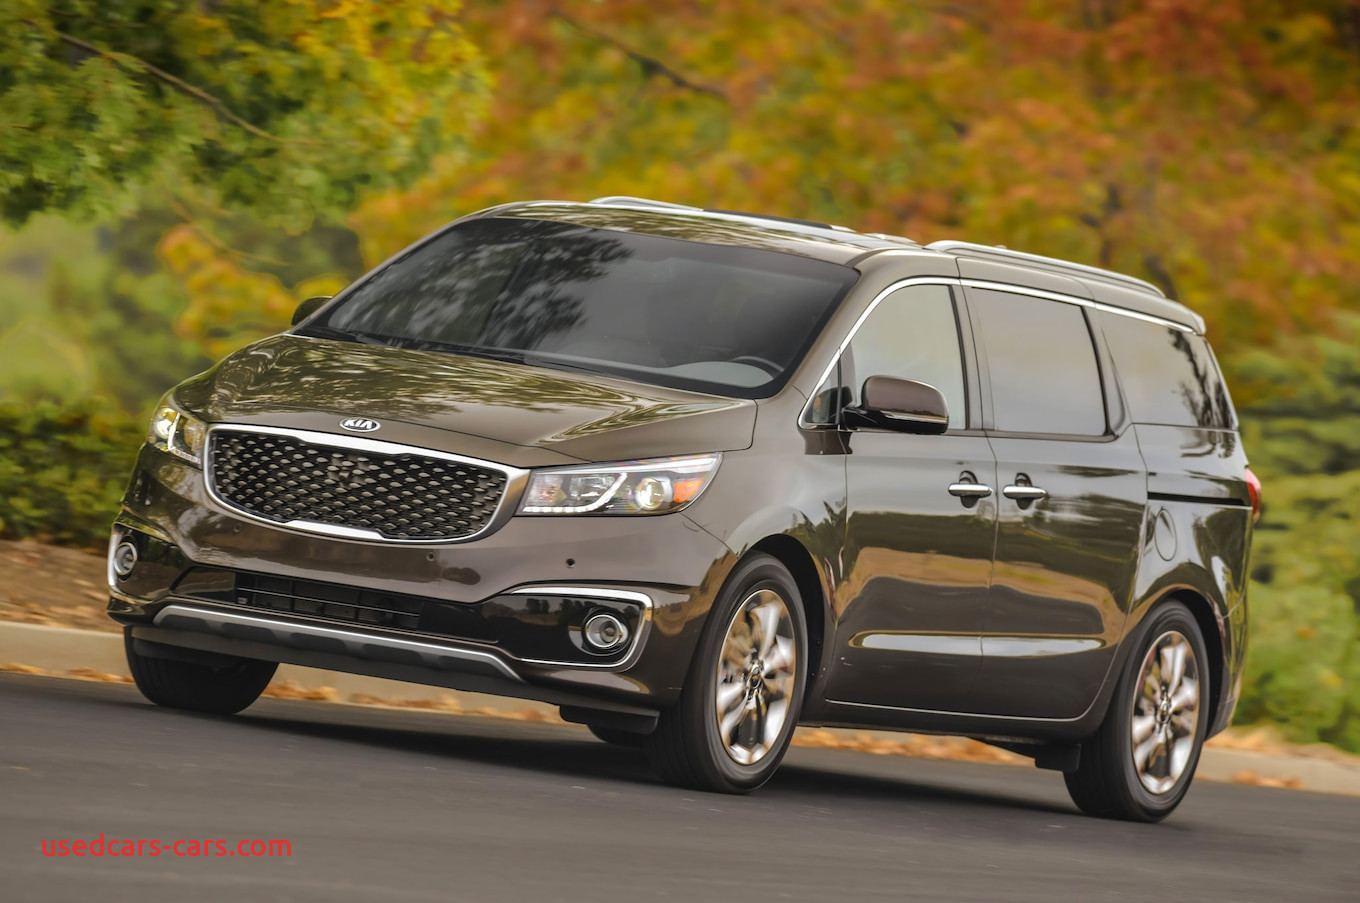 Kia Sedon Inspirational 2016 Kia Sedona Reviews and Rating Motor Trend